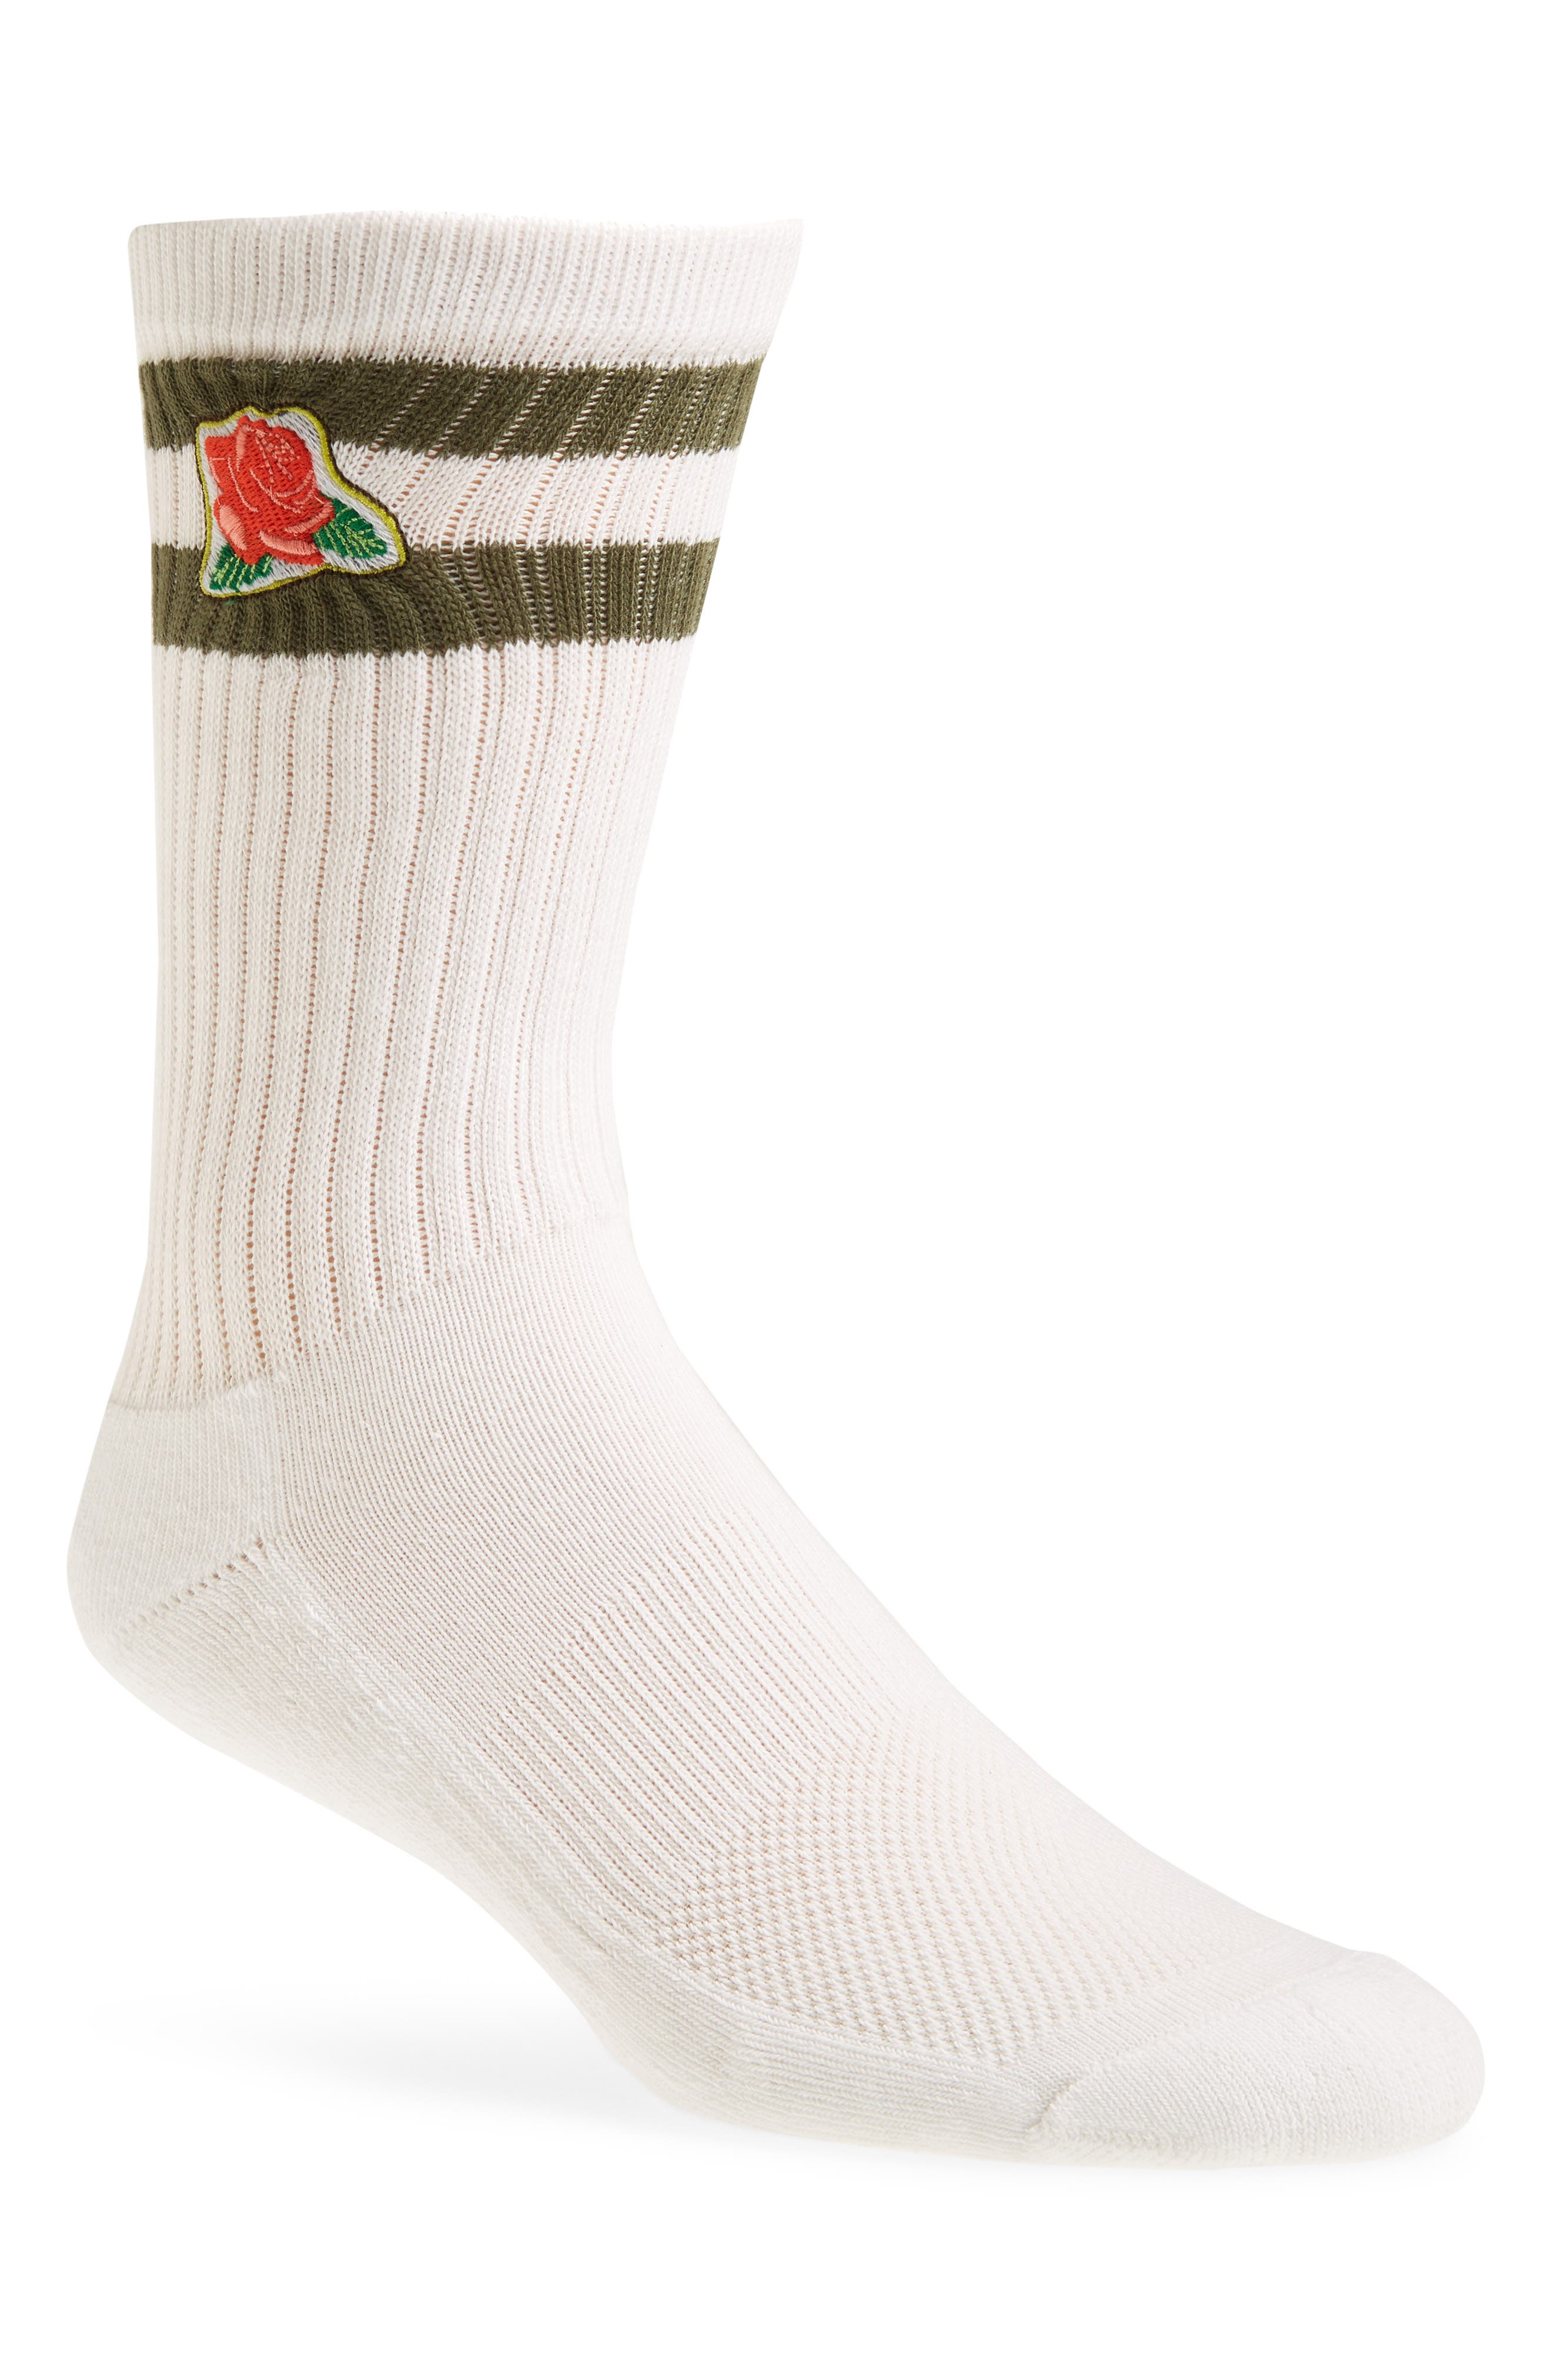 THE RAIL, Embroidered Icon Crew Socks, Main thumbnail 1, color, WHITE- GREEN ROSE